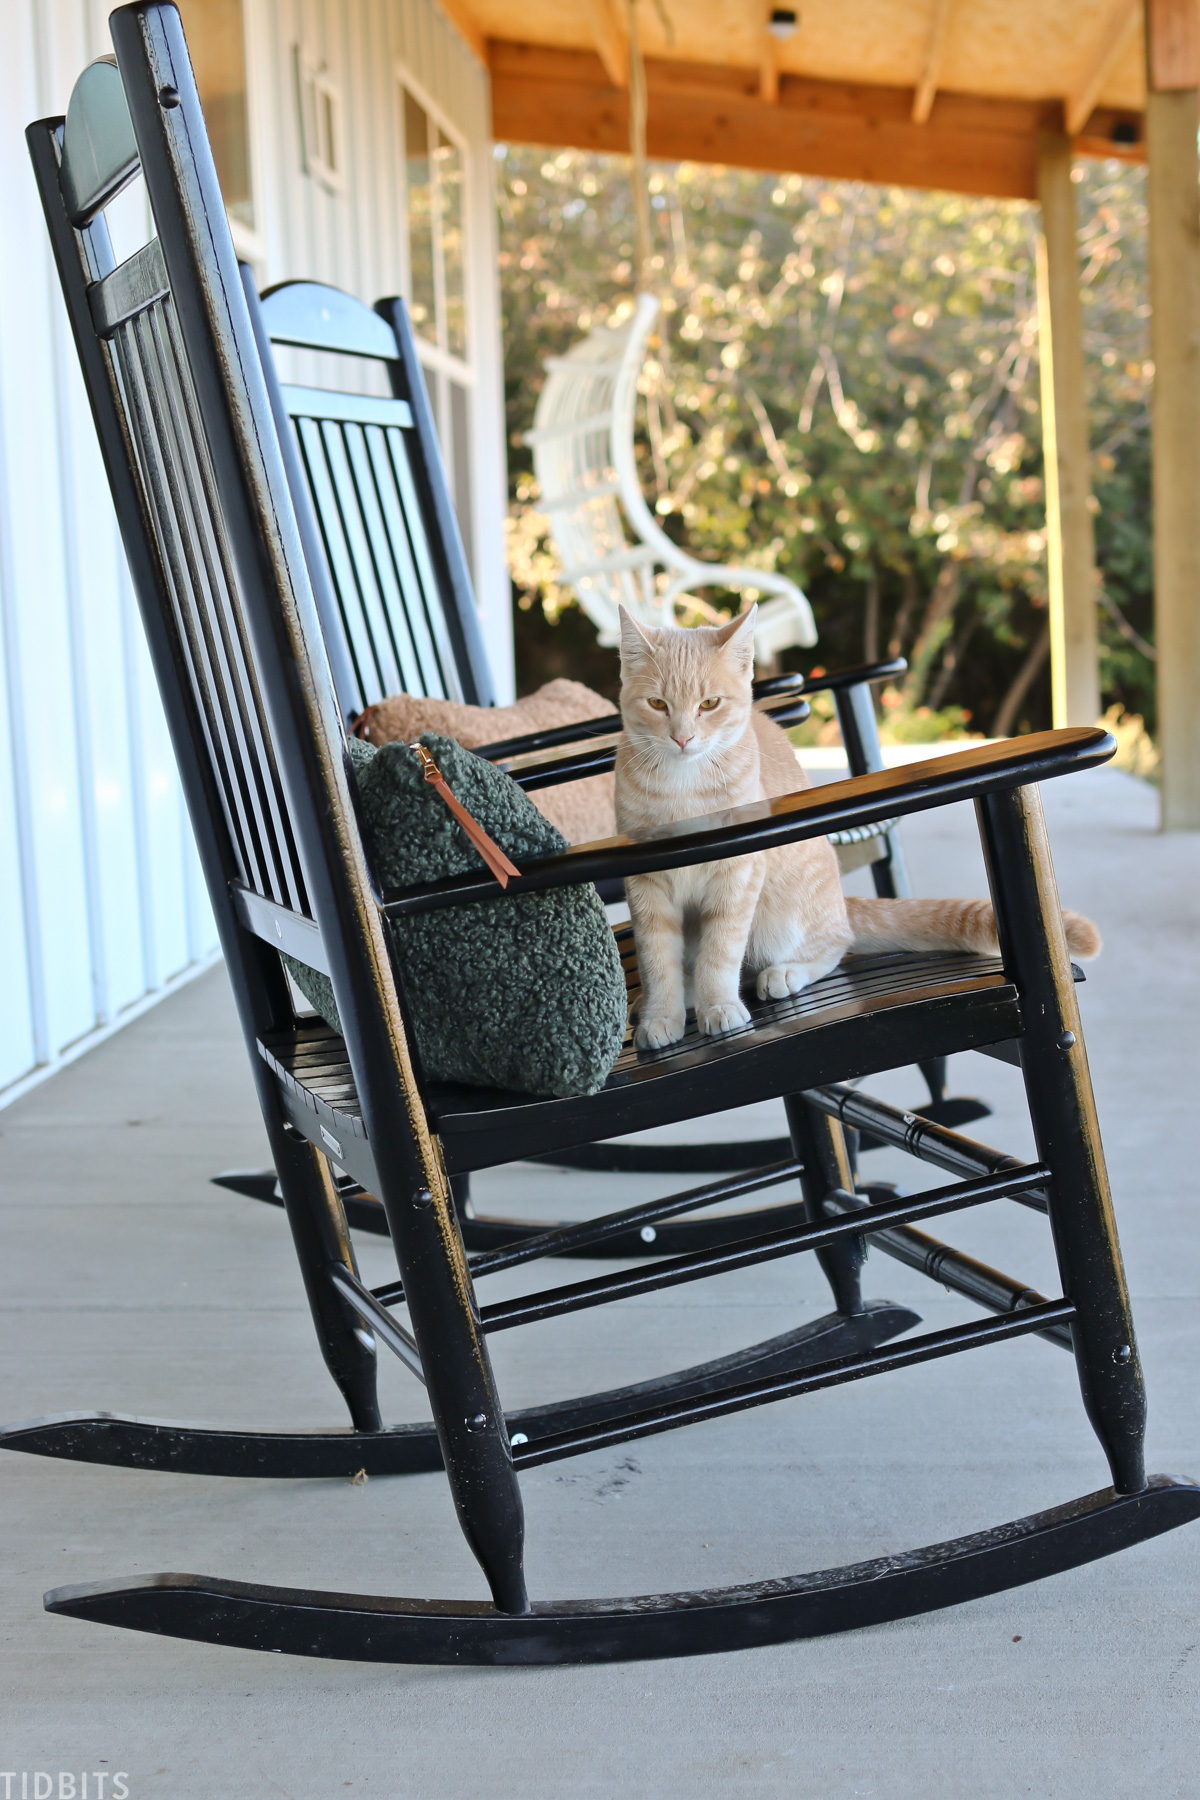 cat sitting on black rocking chair on front porch